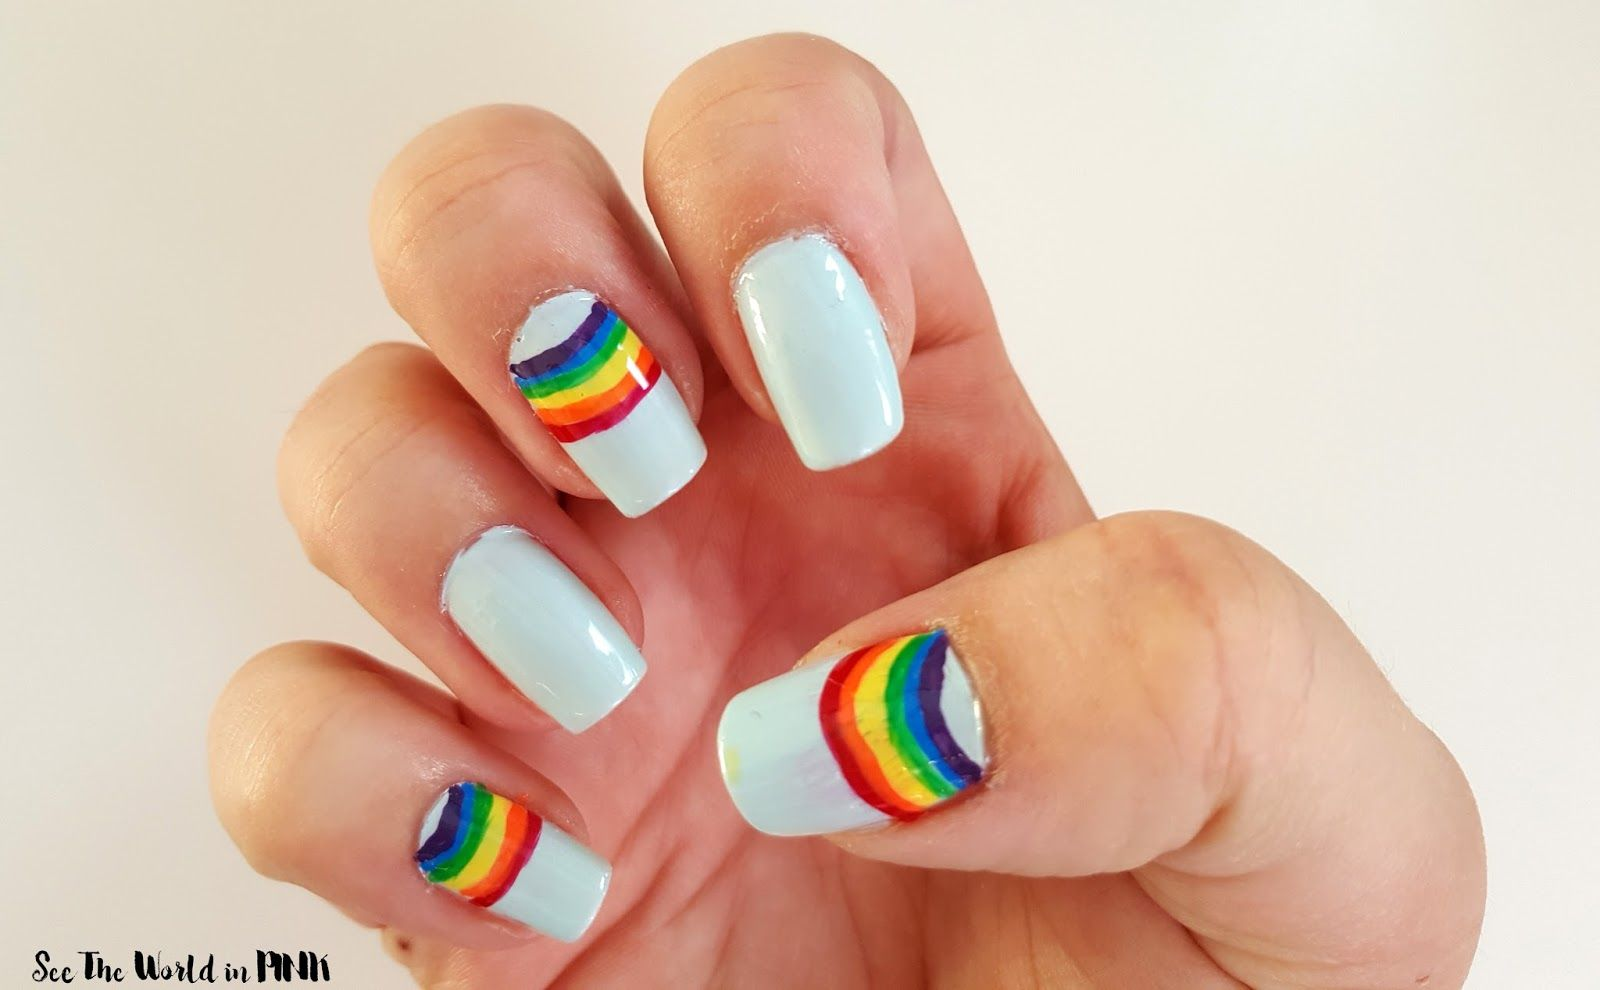 Manicure Tuesday - Mini Rainbow Accent Nails! | Accent nails ...